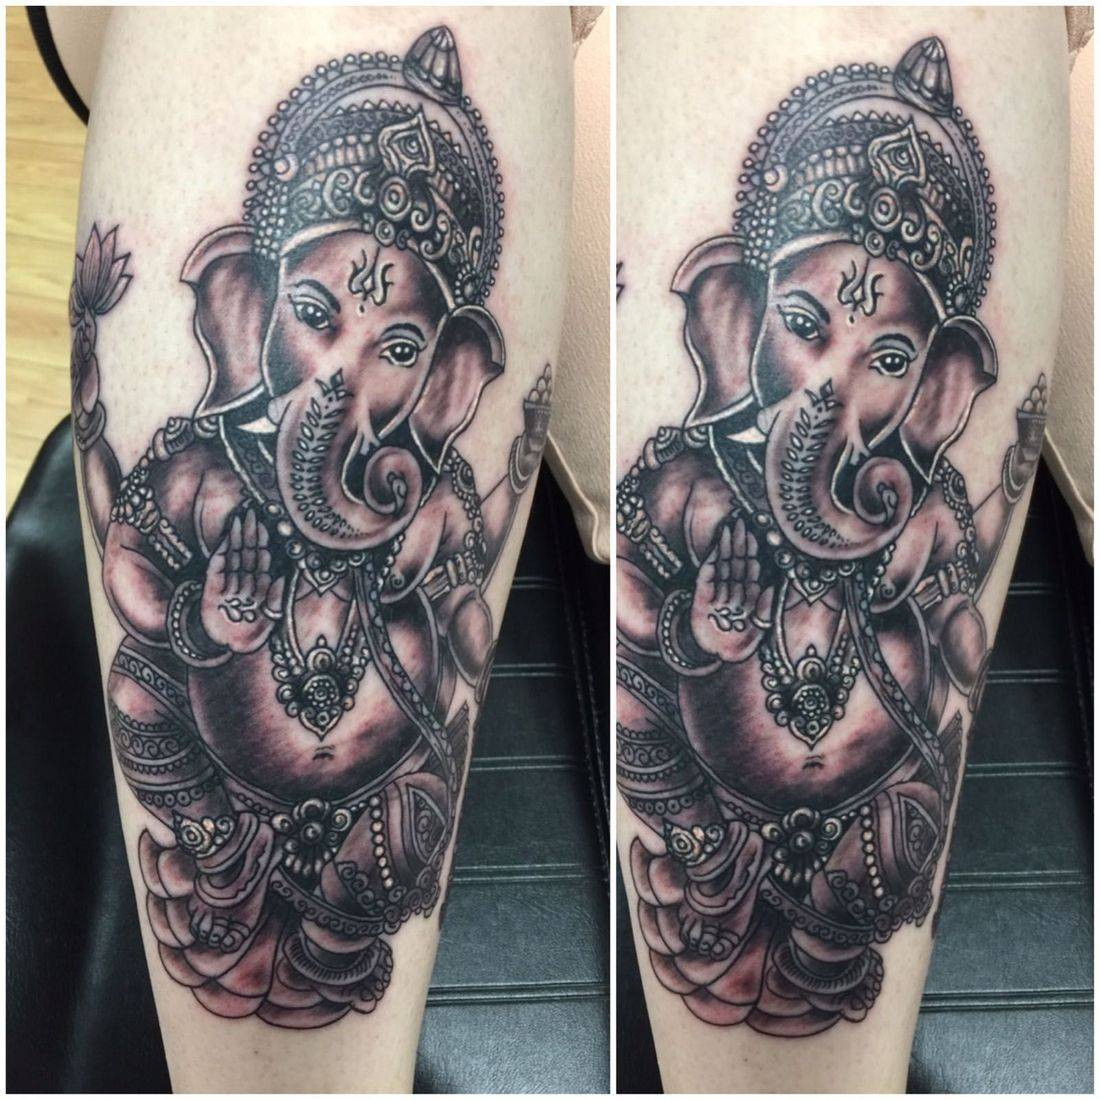 Ganesh Tattoo by mcgoldtooth at Kazbah Leicester